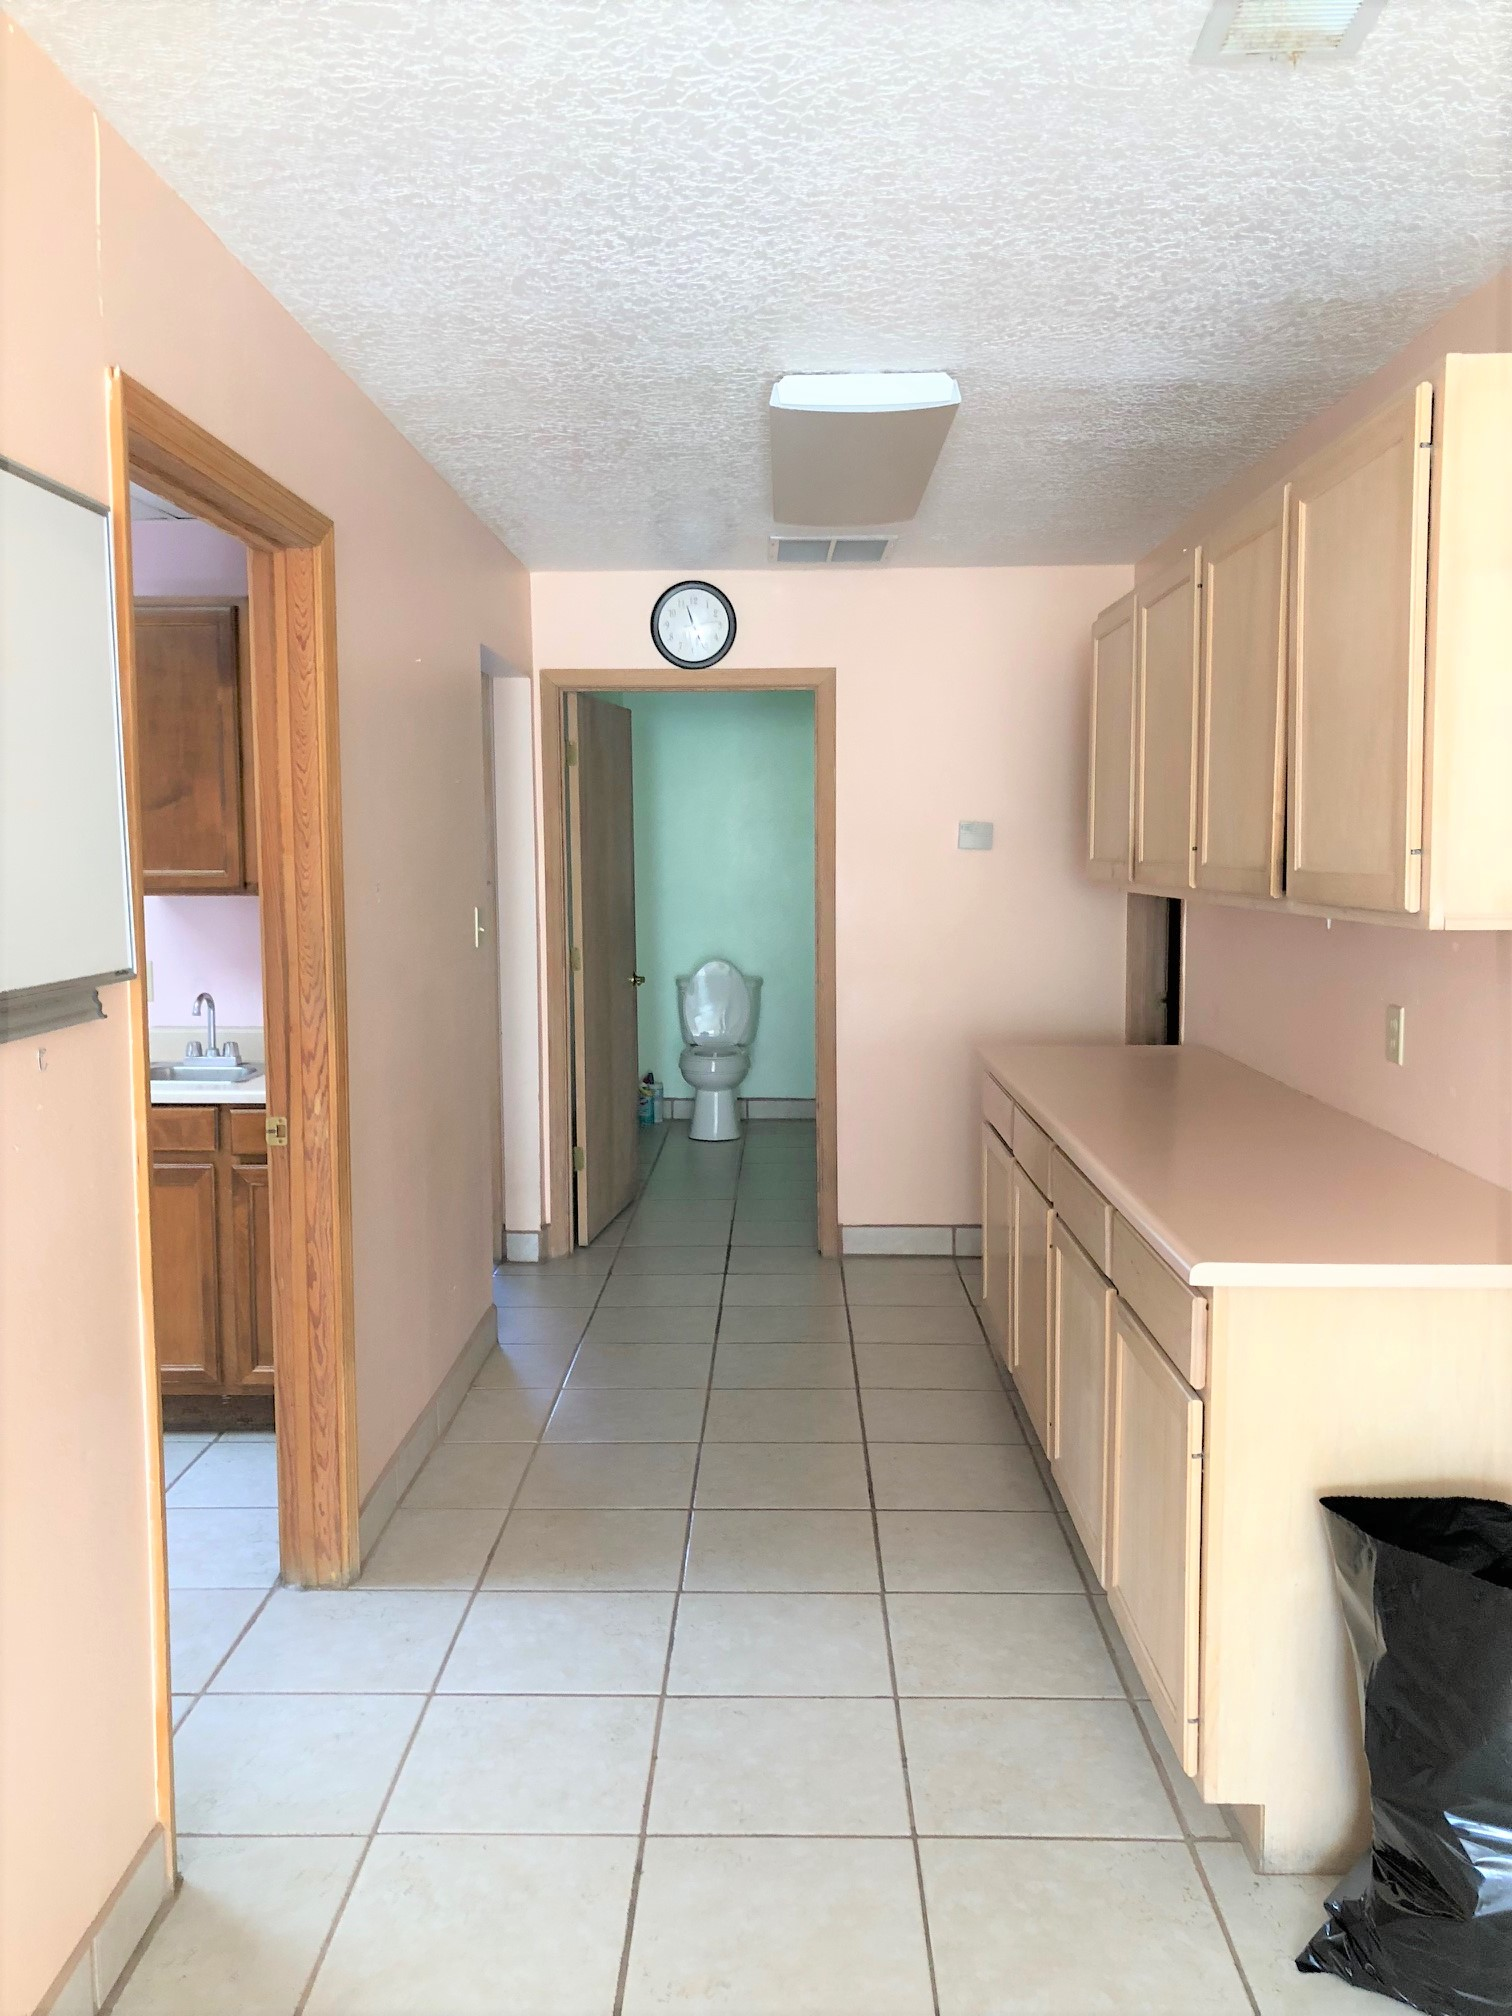 4035 PEGGY RD, RIO RANCHO, New Mexico 87124, ,Office,Pending Sale,PEGGY RD,1095